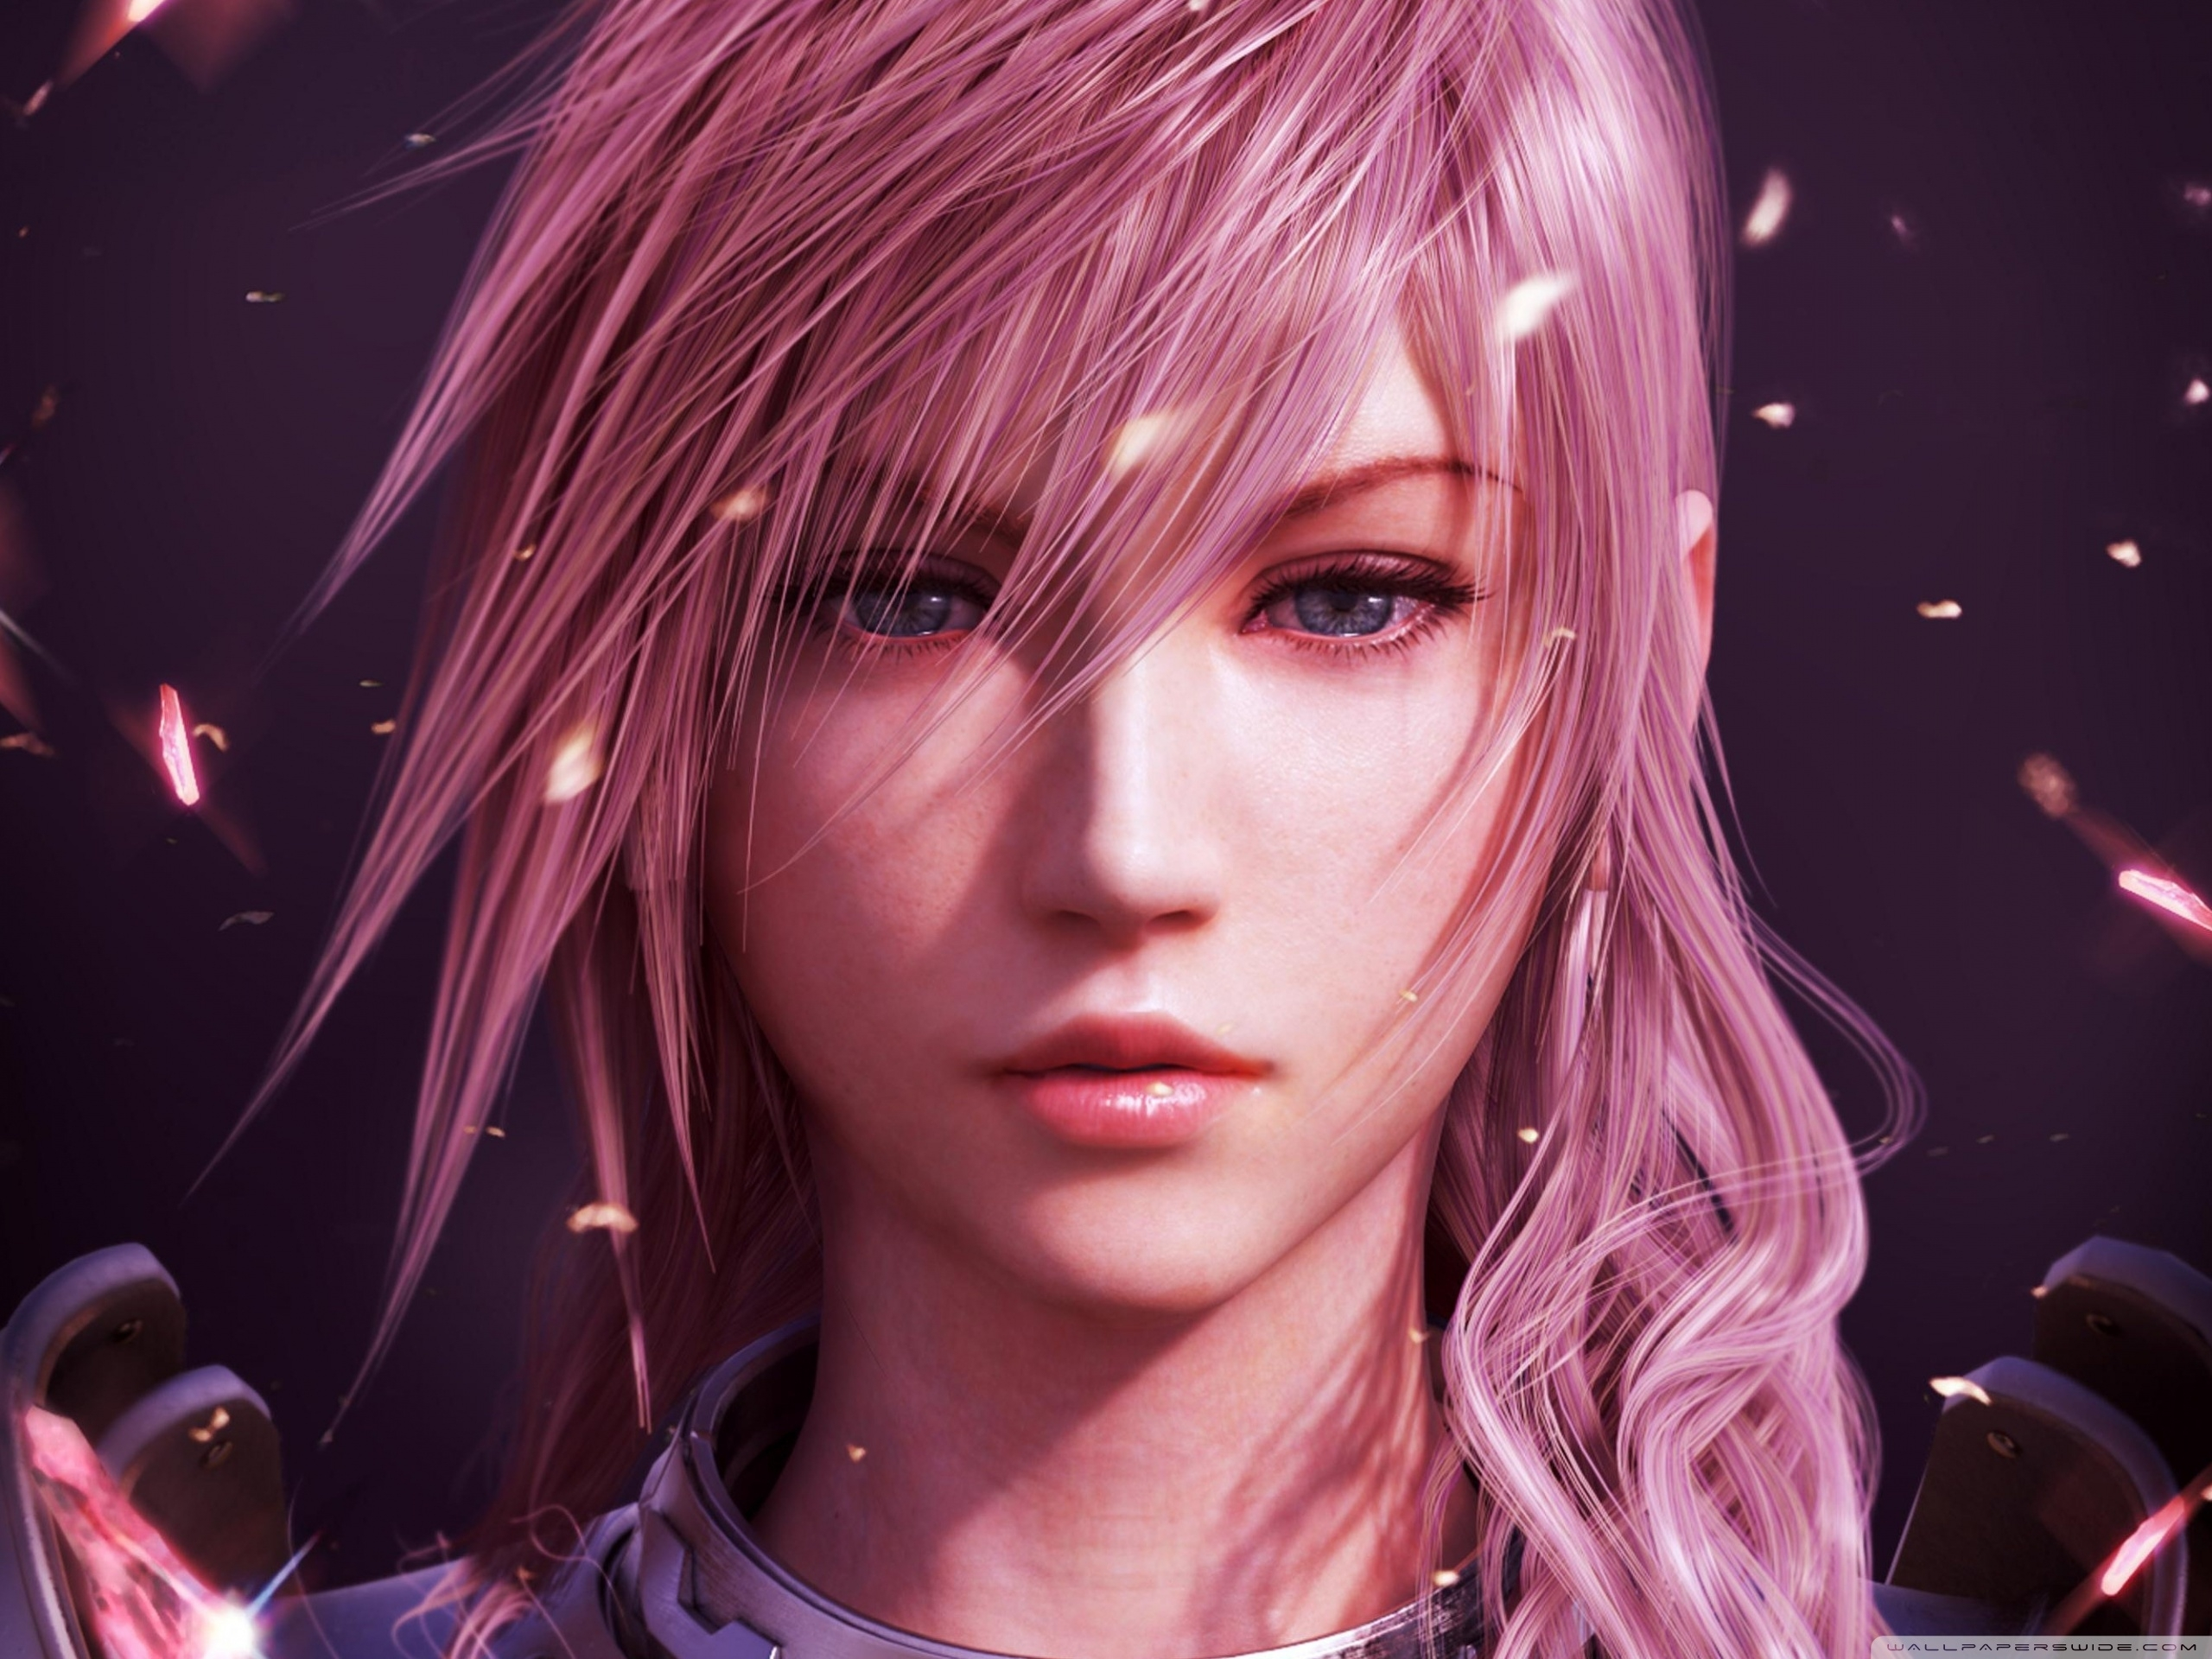 final fantasy xiii lightning ❤ 4k hd desktop wallpaper for 4k ultra